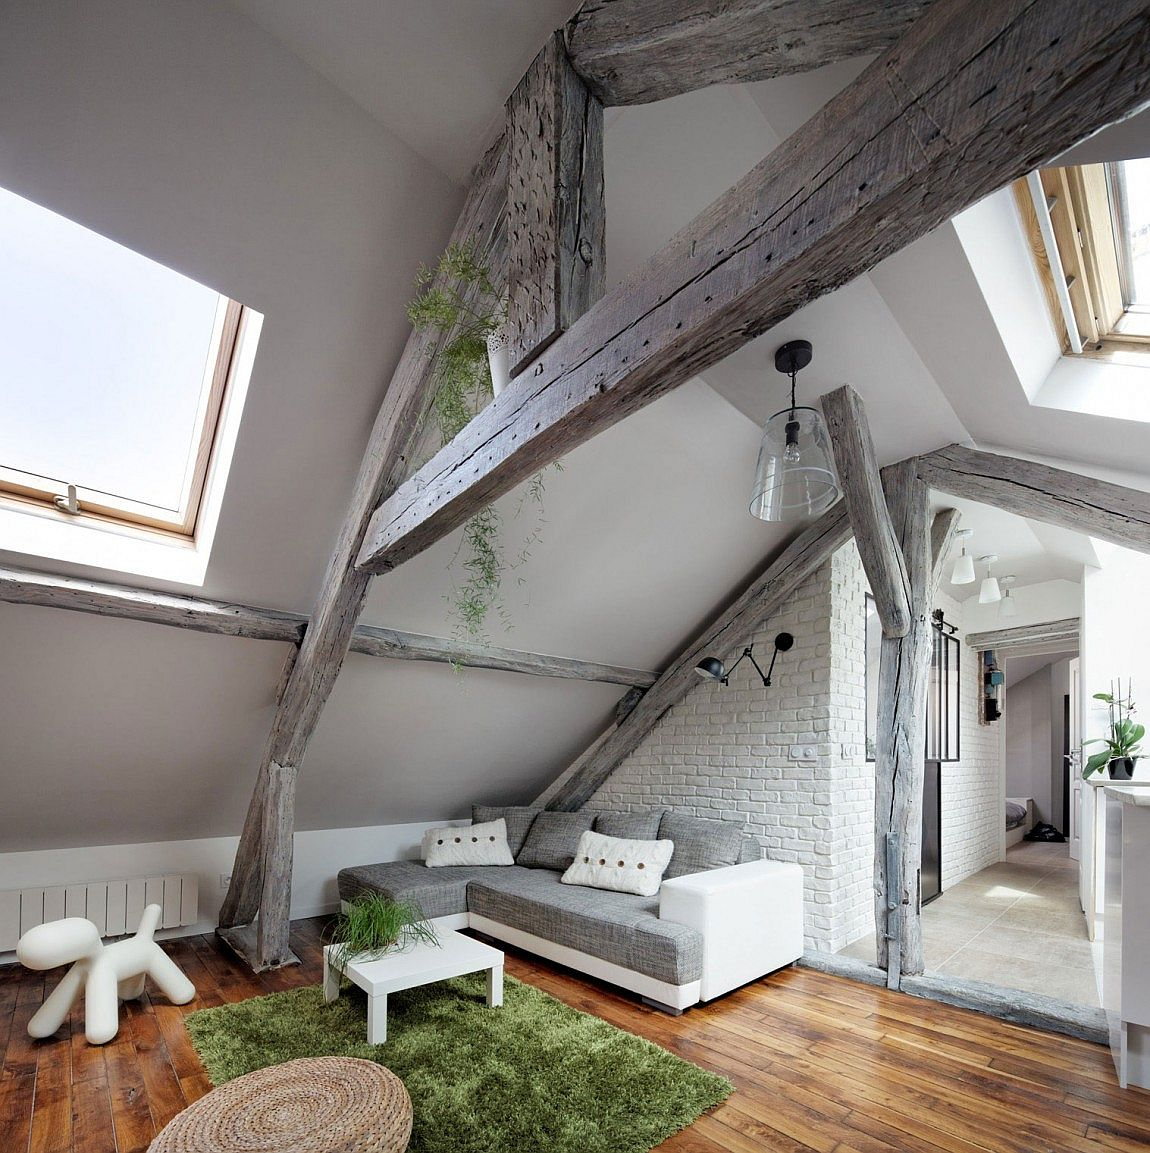 Rustic Modern Attic Apartment Renovation Oozes Parisian Panache!